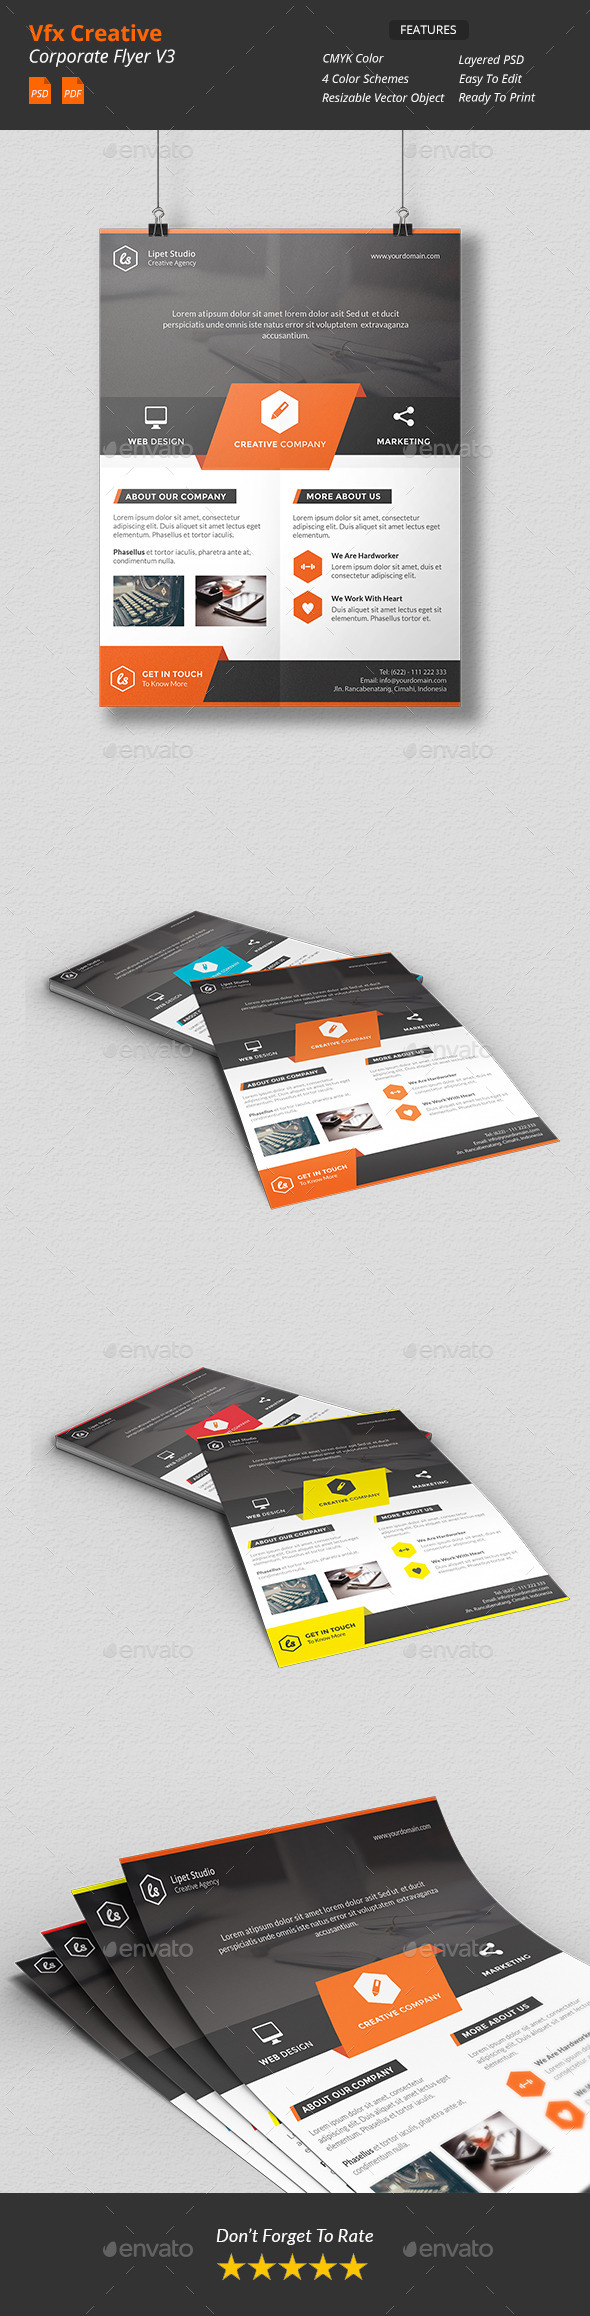 Vfx - Creative Corporate Flyer v3 - Corporate Flyers